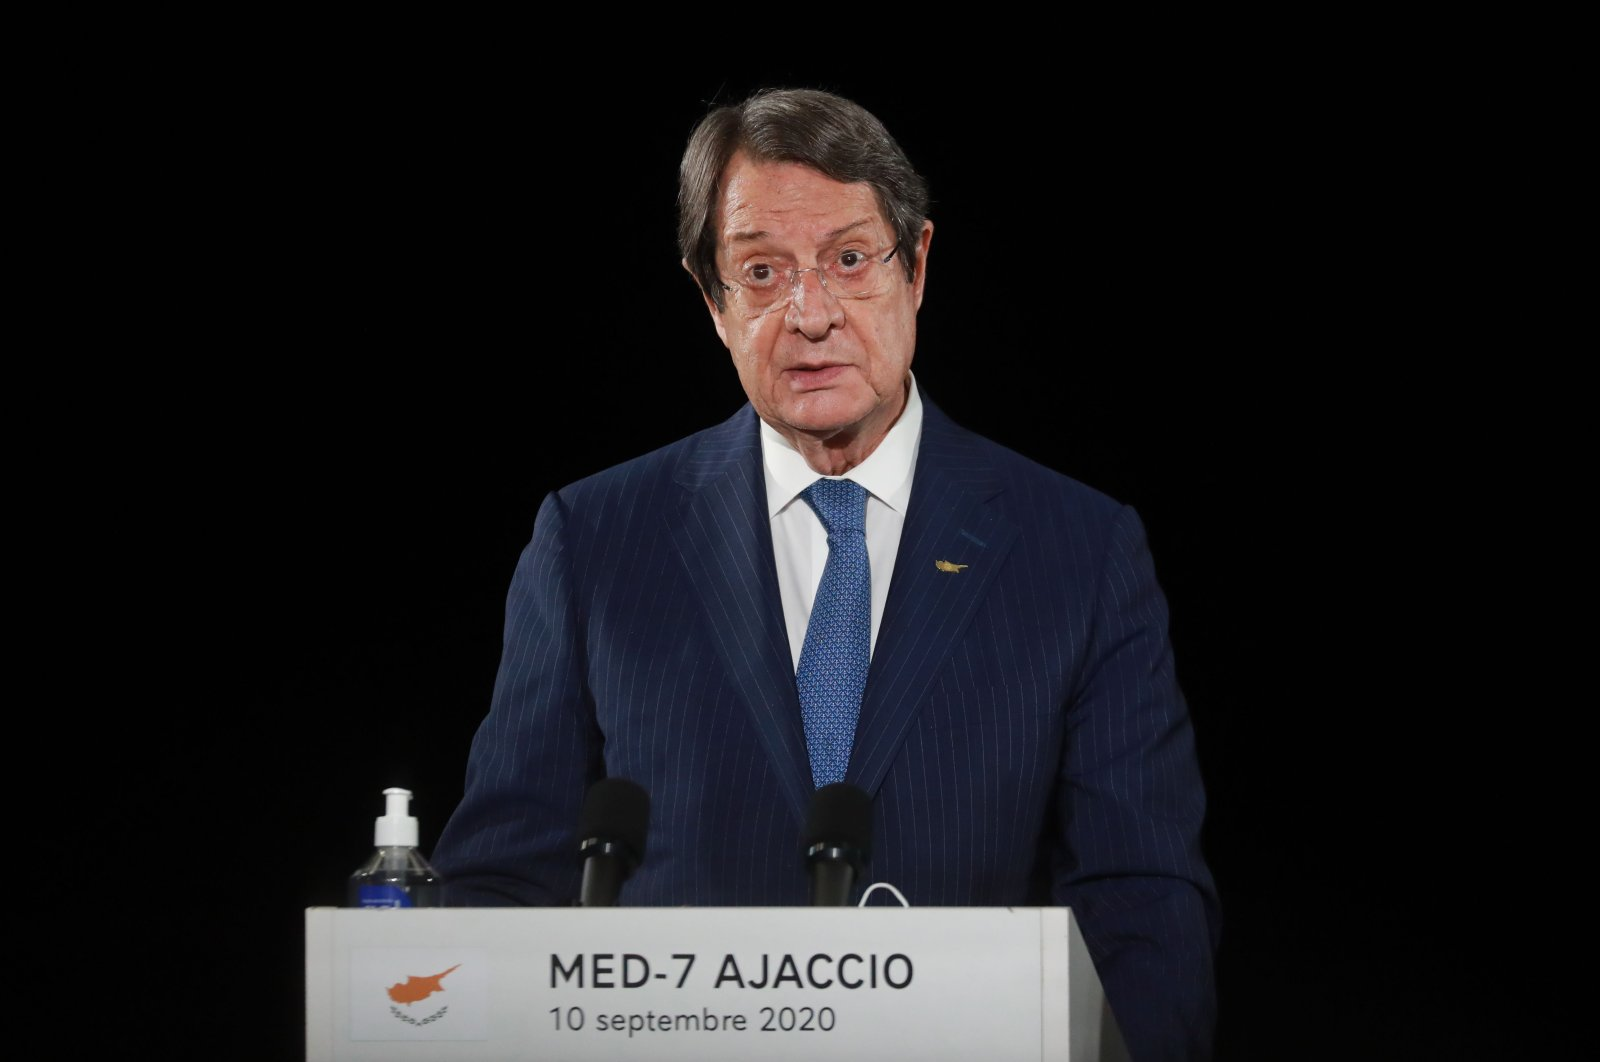 Greek Cypriot administration leader Nicos Anastasiades speaks during the closing press conference of the seventh MED7 Mediterranean countries summit, on September 10, 2020 in Porticcio, Corsica. (AFP Photo)